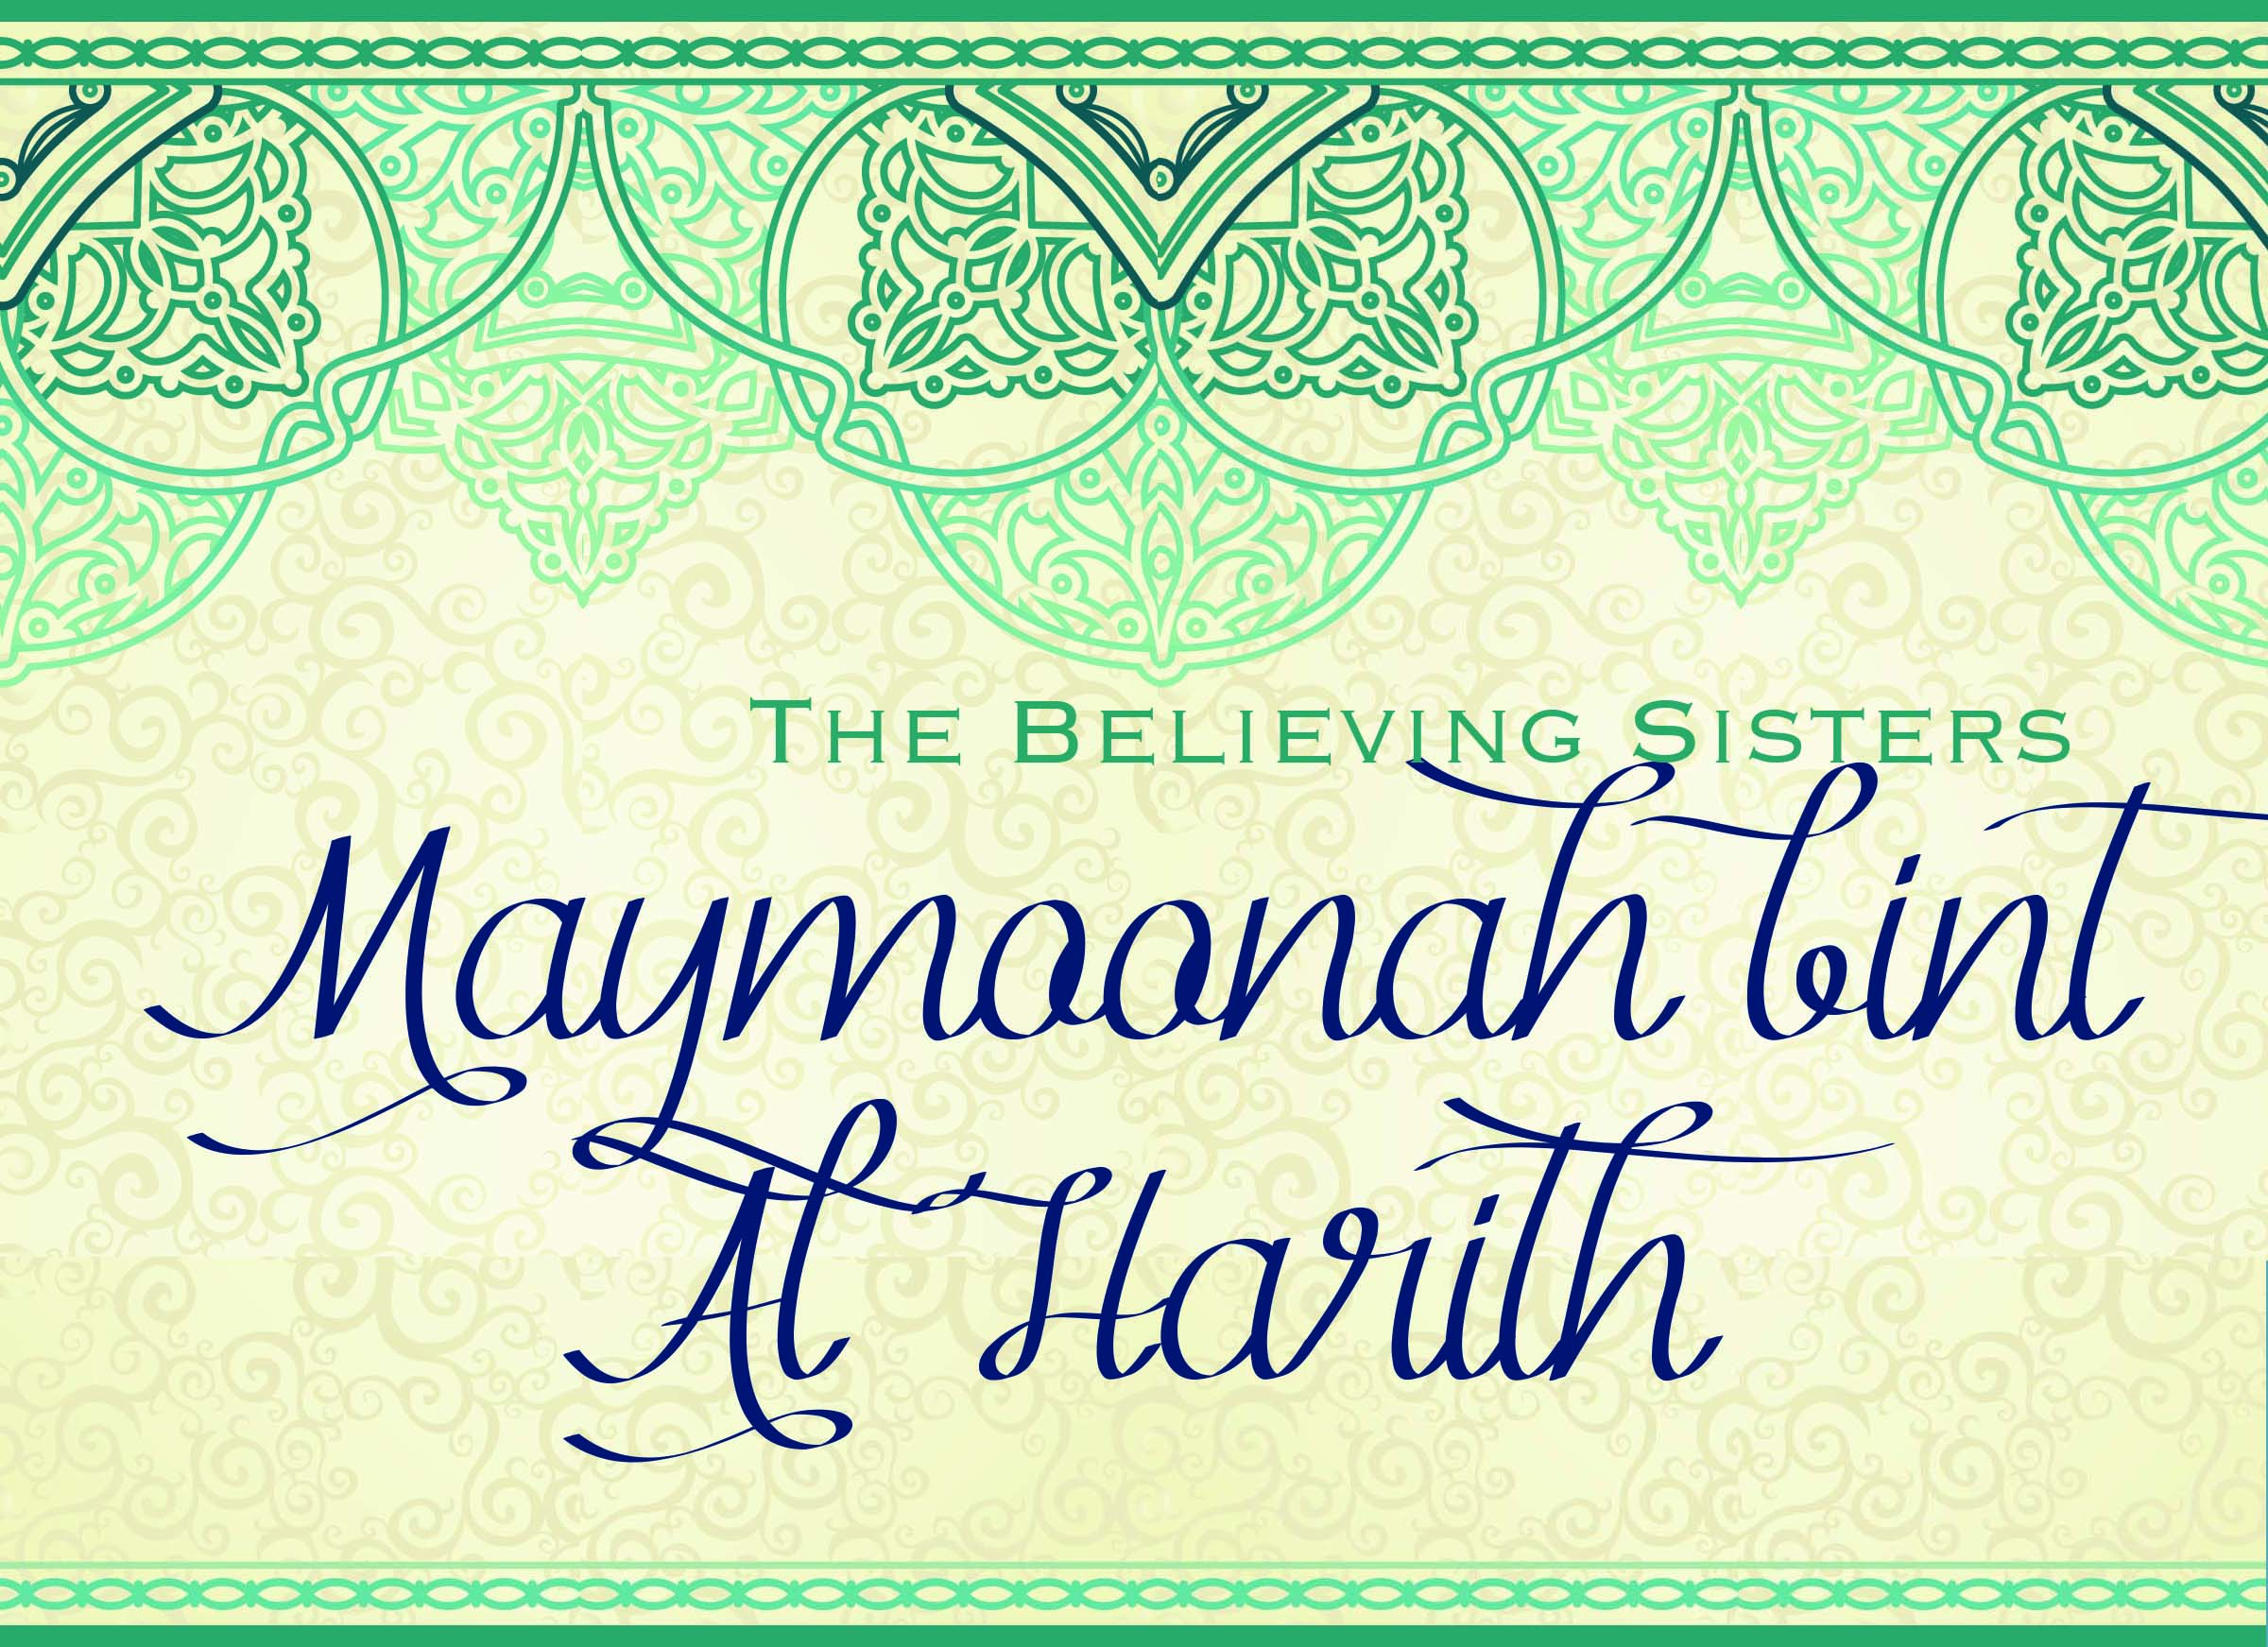 The Believing Sisters-Part 2: Maymoonah bint Al Harith